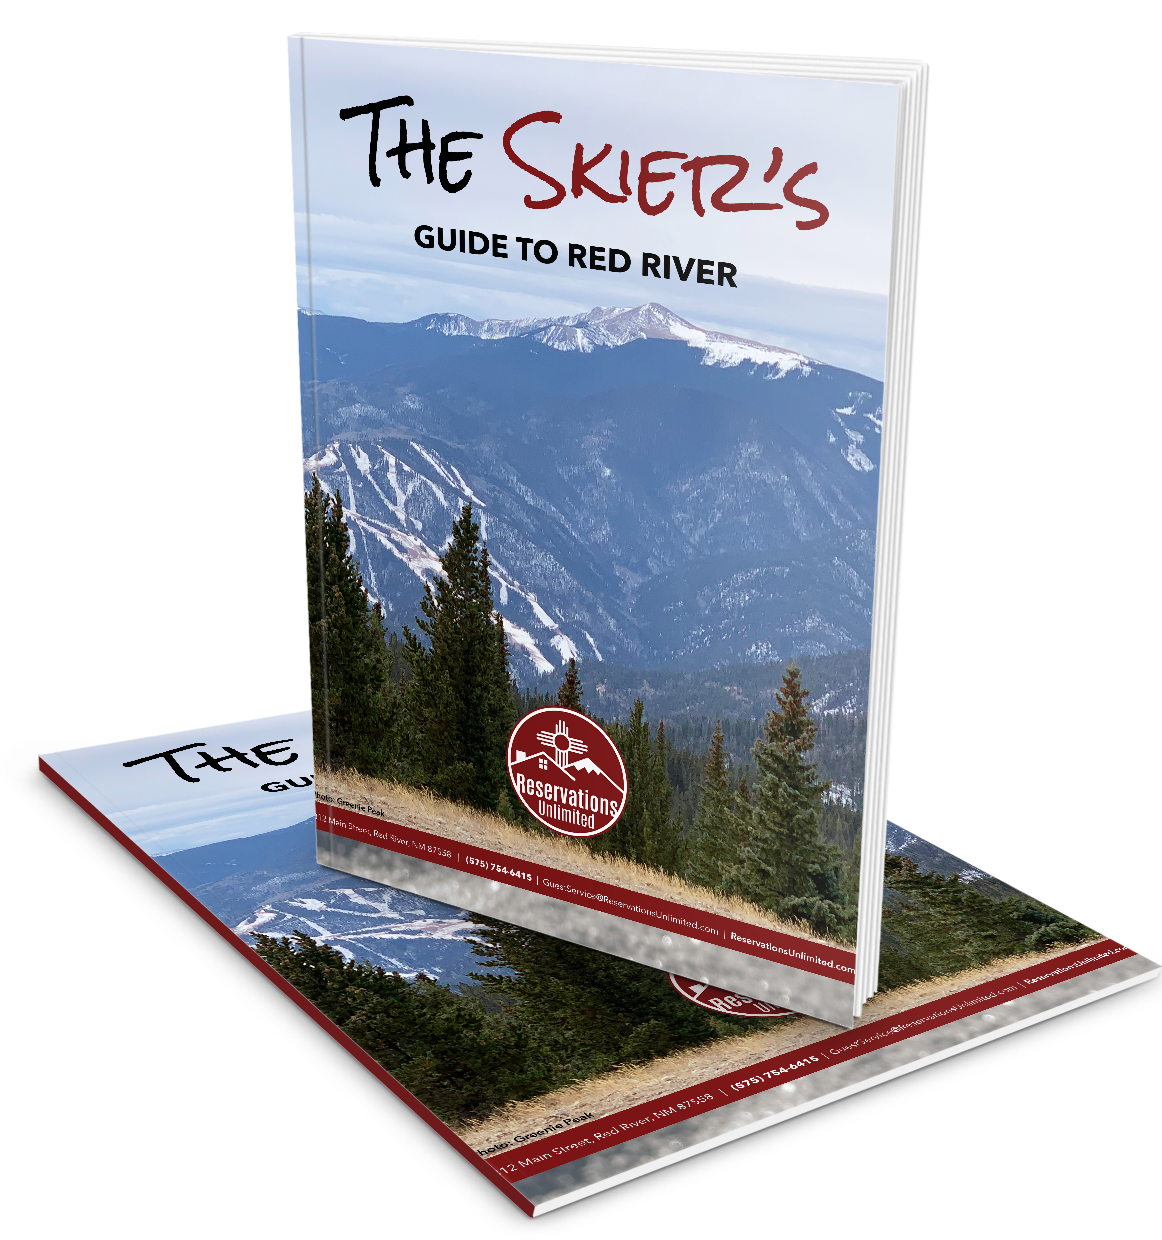 Skiers Guide - clear background